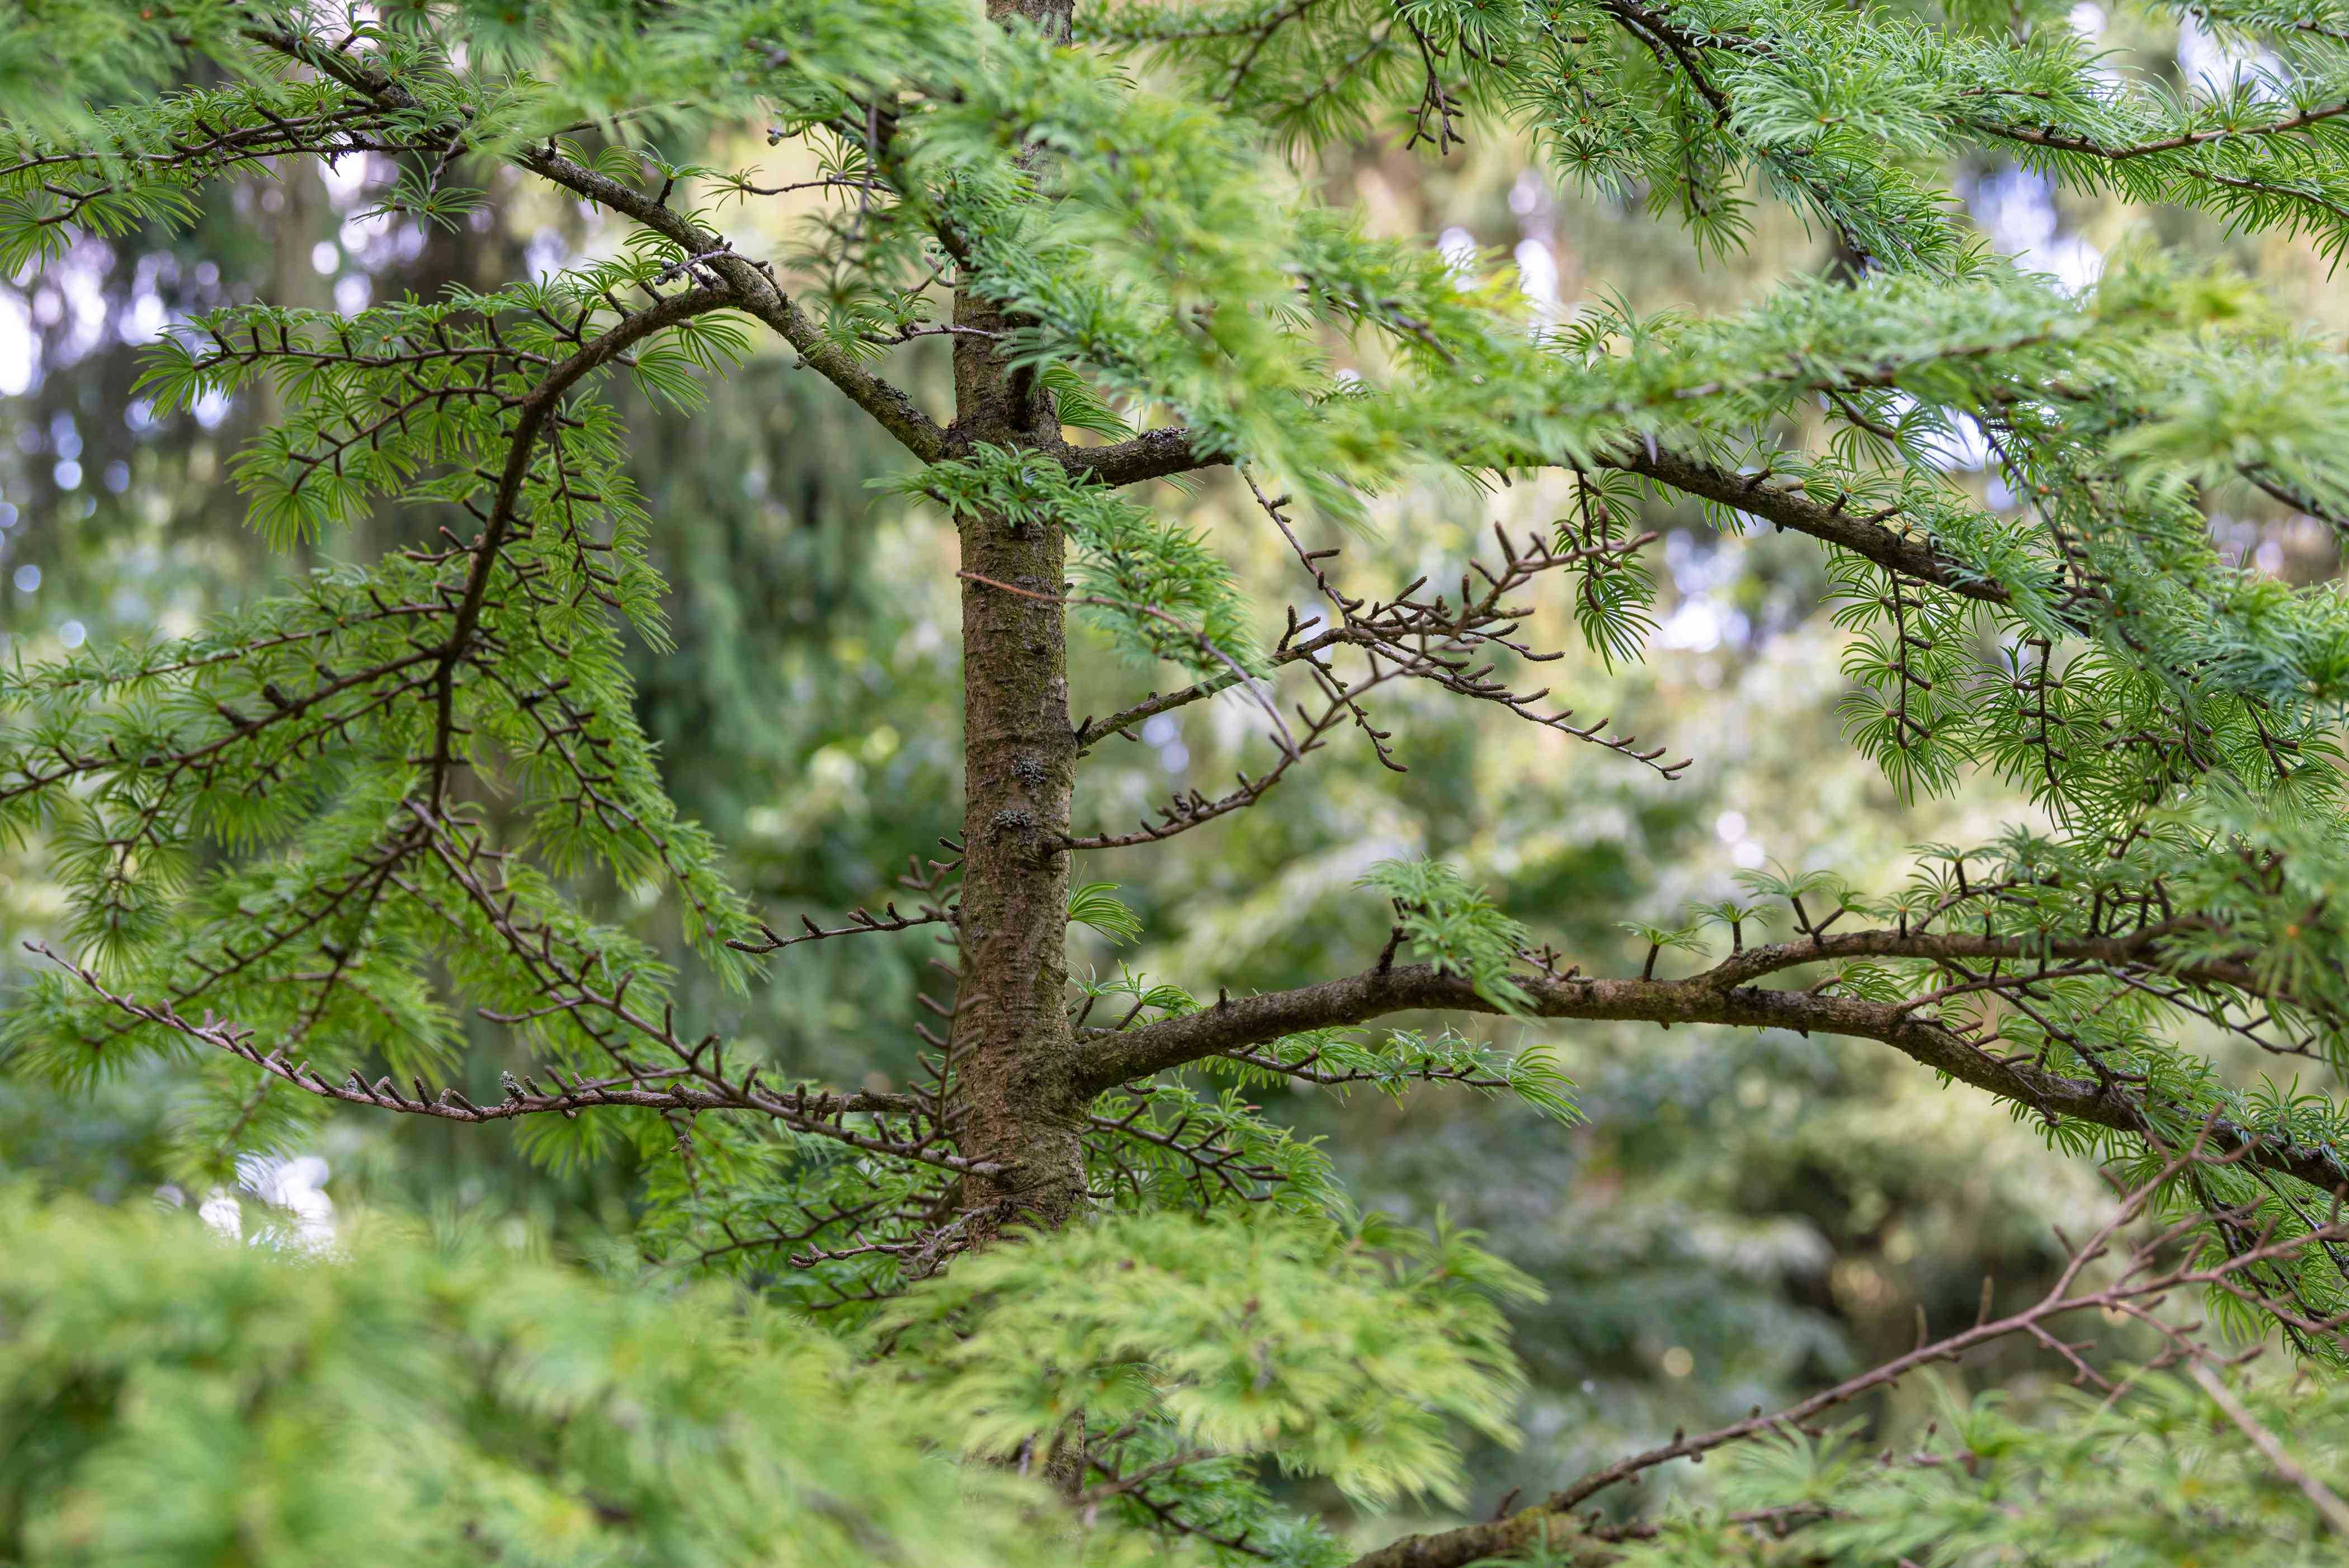 Golden larch tree with thin trunk with small needles on thin branches closeup